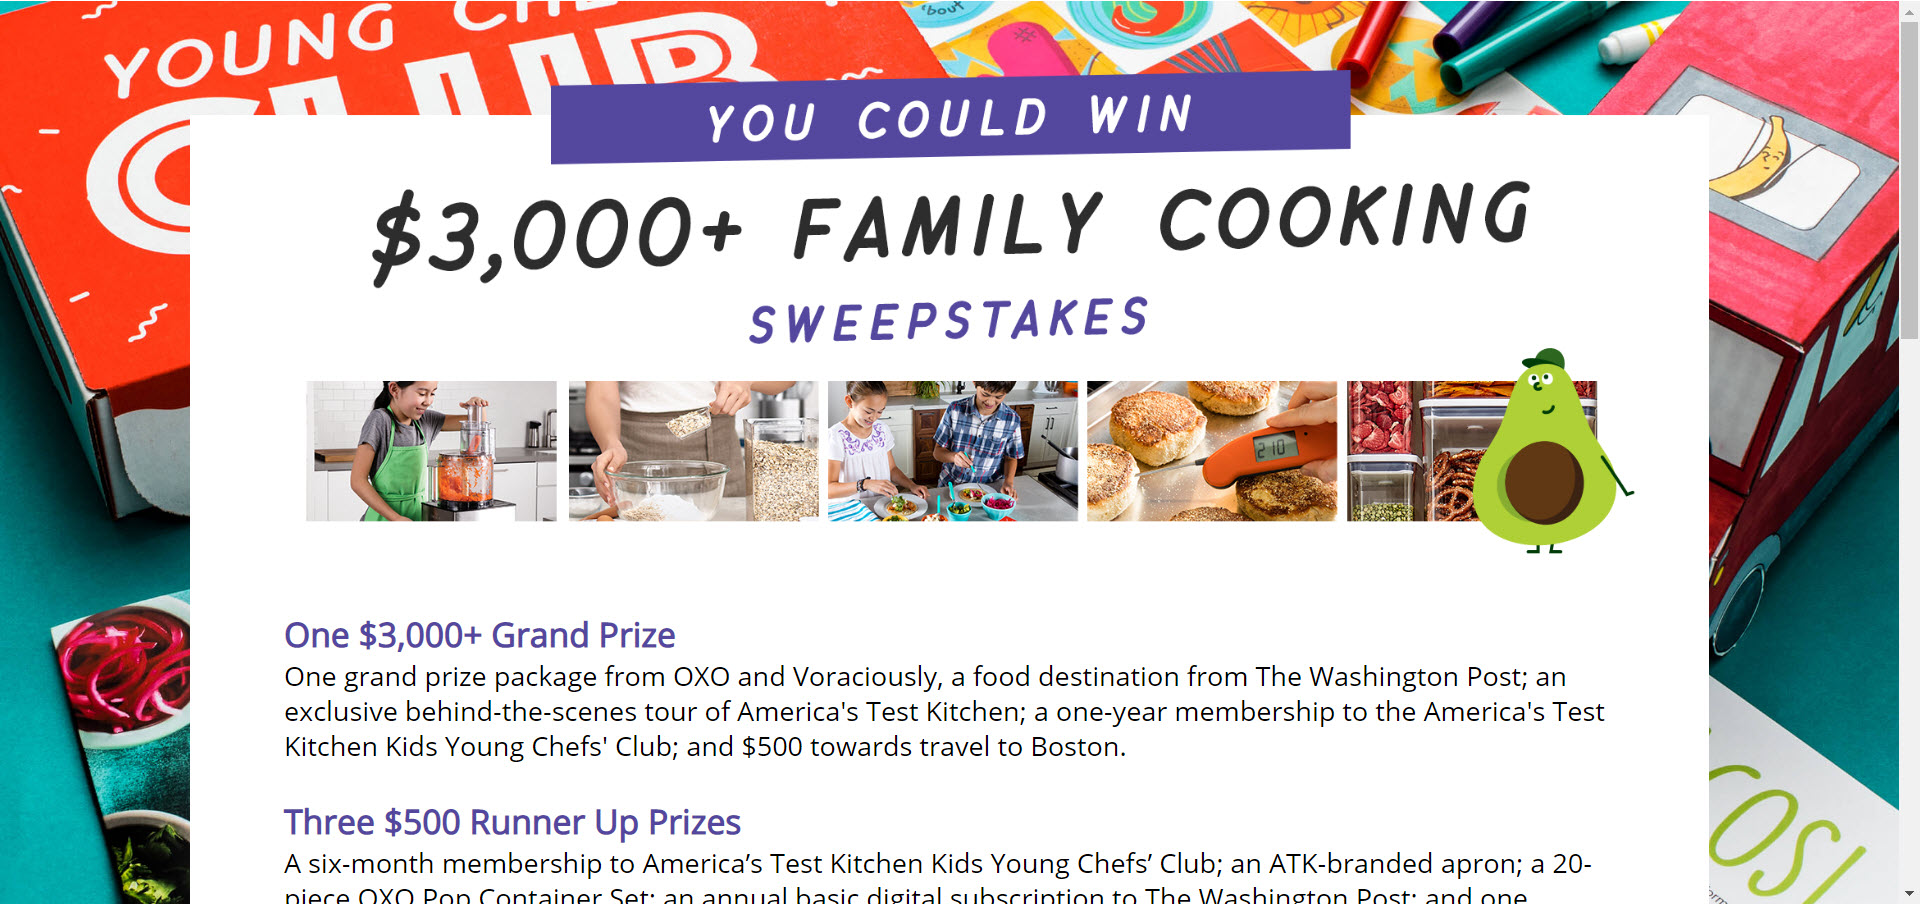 Enter the America's Test Kitchen Family Cooking Sweepstakes for your chance to win a grand prize package from OXO and Voraciously, a food destination from The Washington Post; an exclusive behind-the-scenes tour of America's Test Kitchen; a one-year membership to the America's Test Kitchen Kids Young Chefs' Club; and $500 towards travel to Boston.